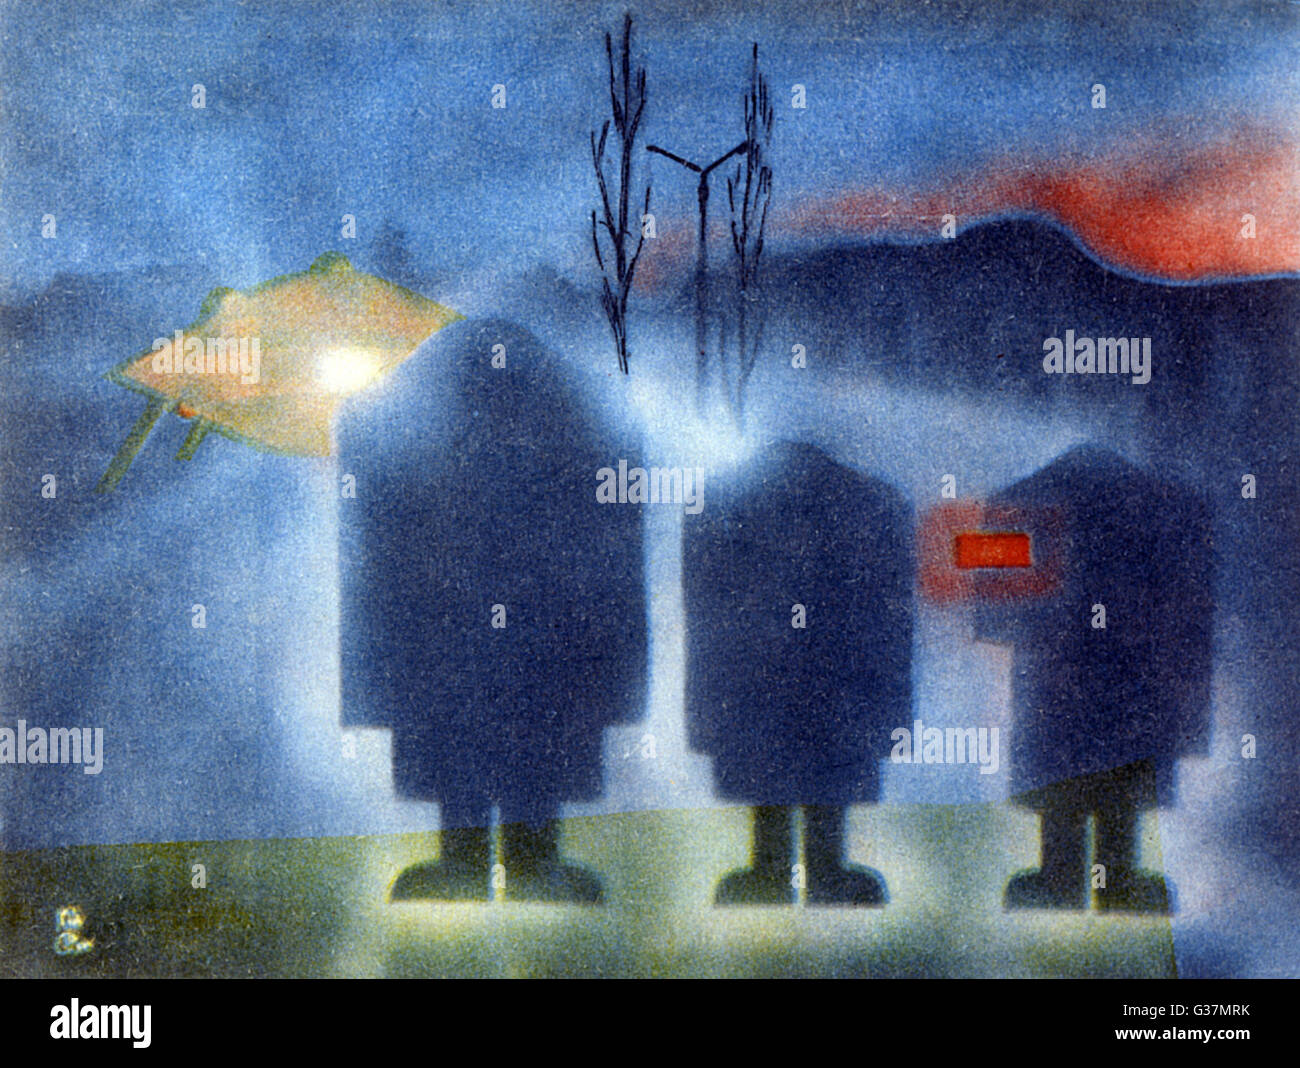 Three alien entities  associated with the landed UFO         Date: 1990 - Stock Image